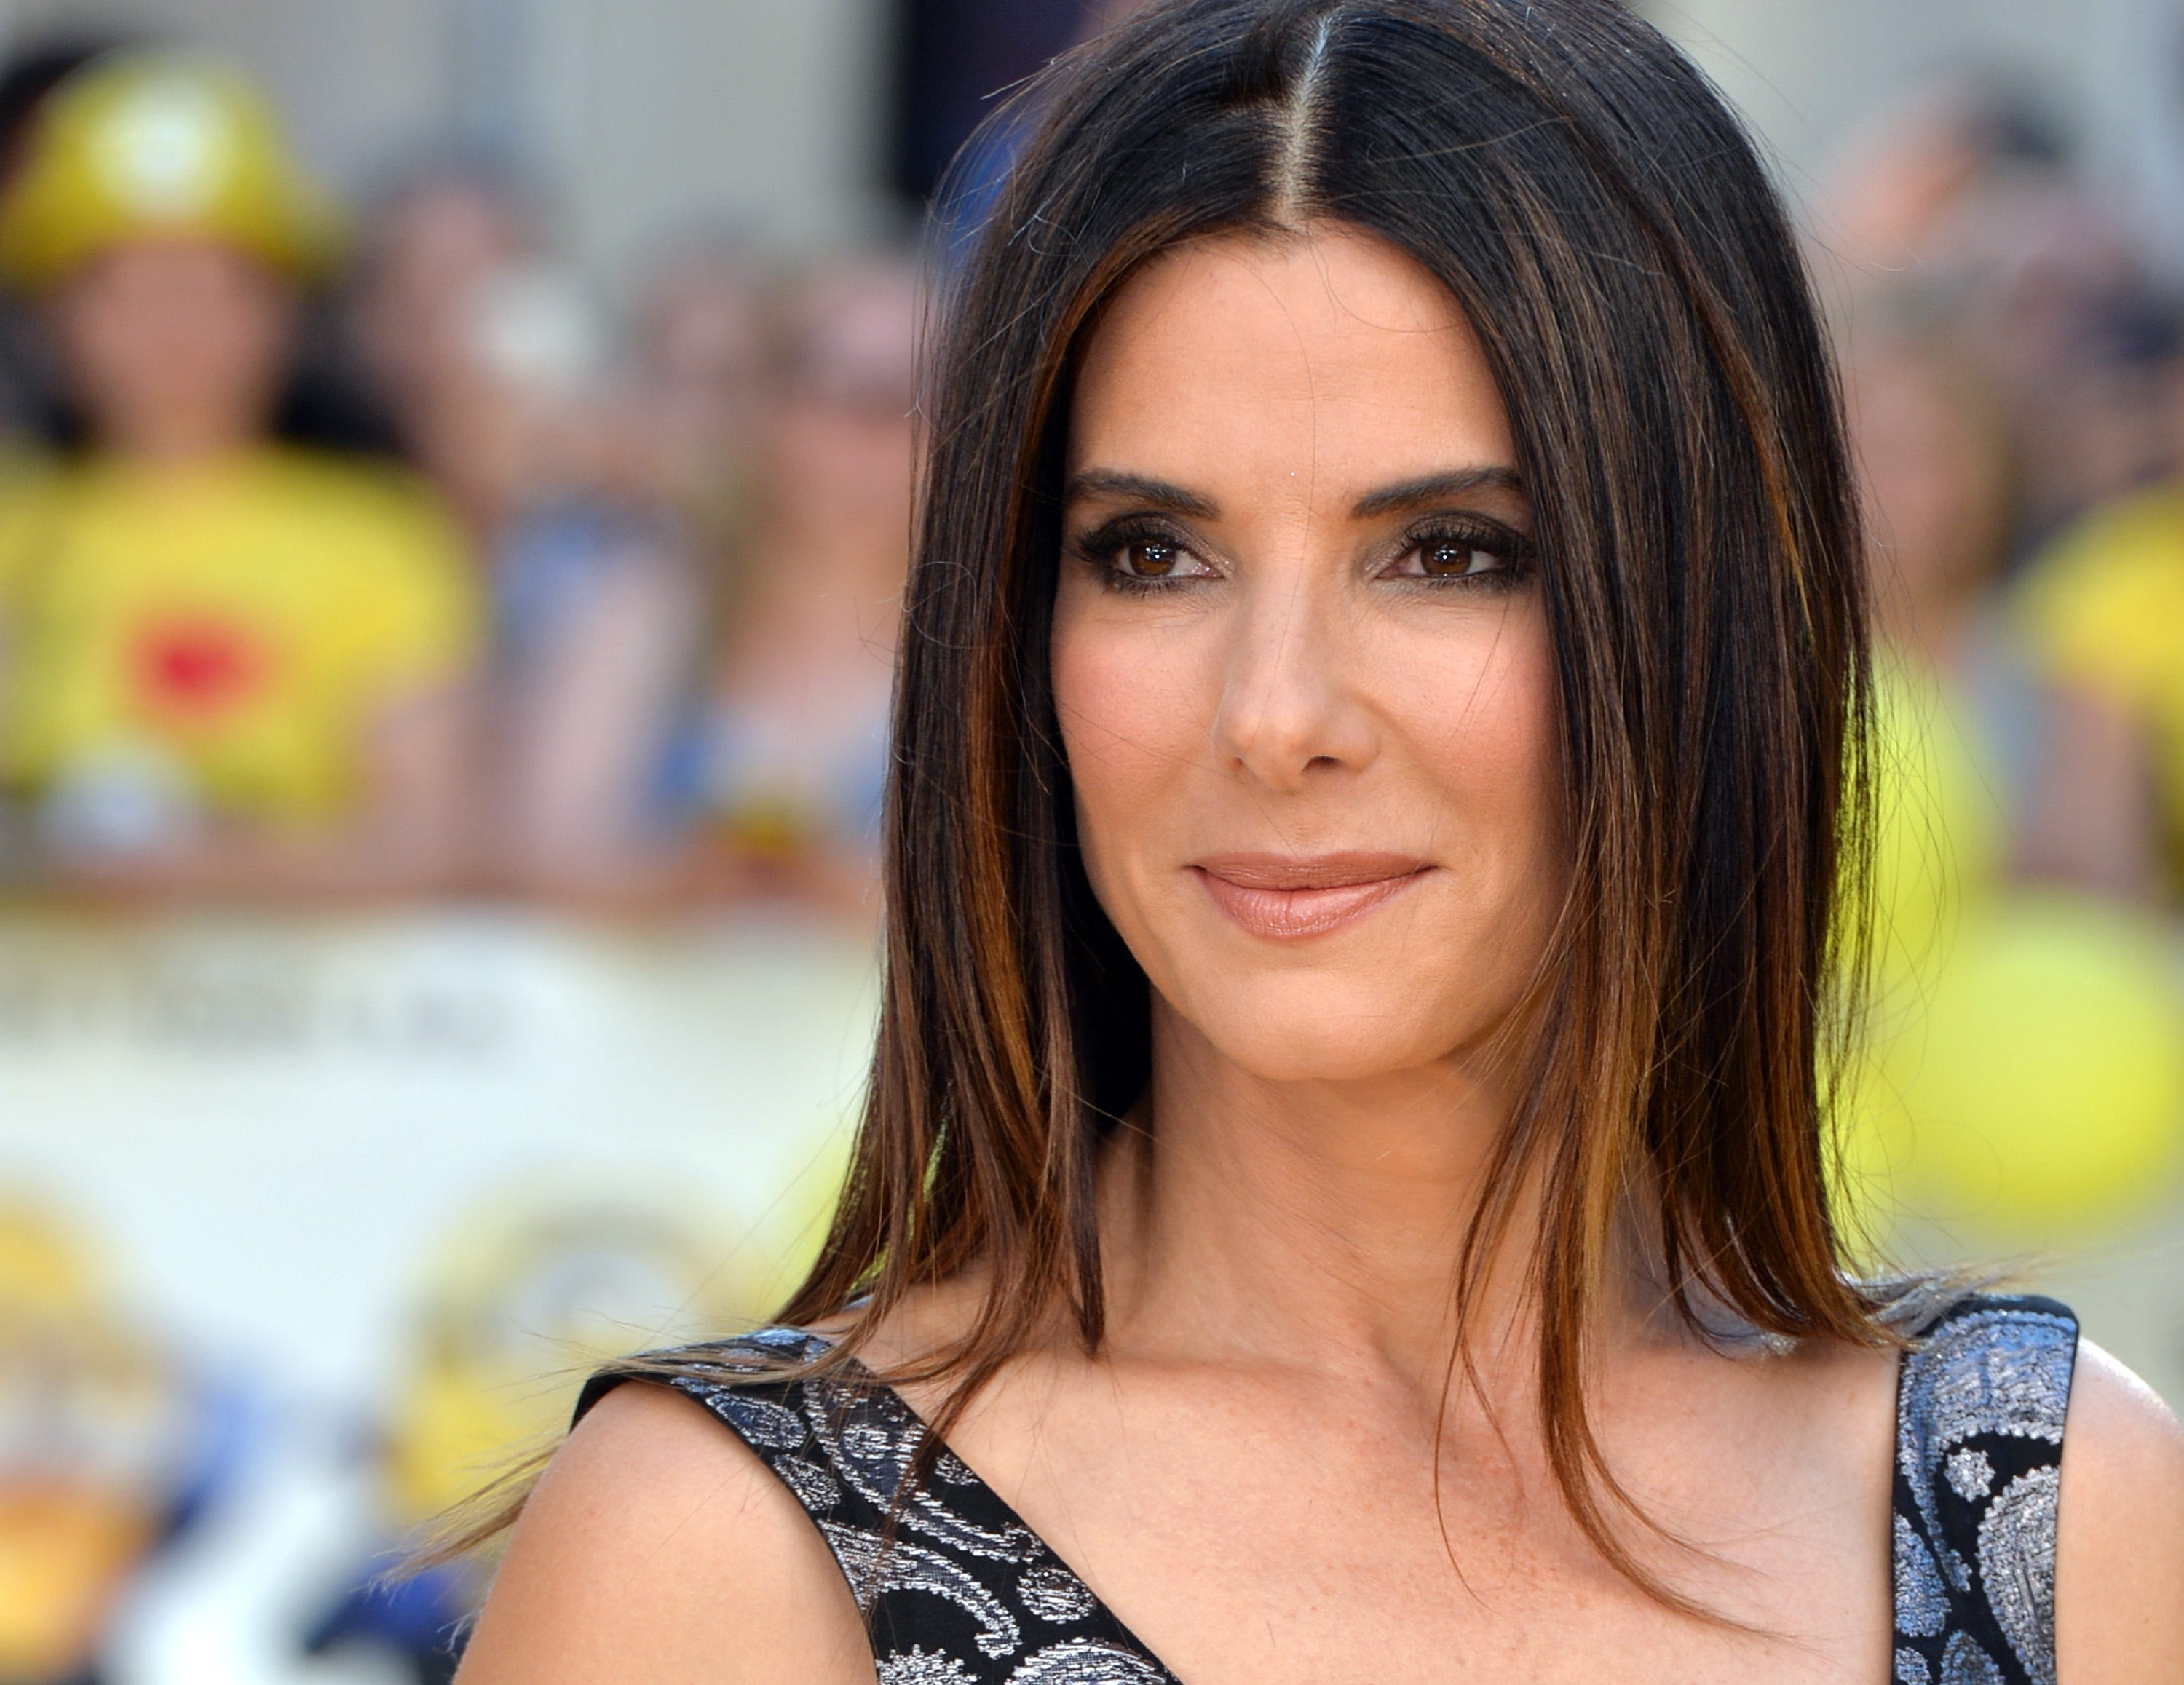 Images Sandra Bullock naked (48 photo), Topless, Cleavage, Boobs, legs 2020